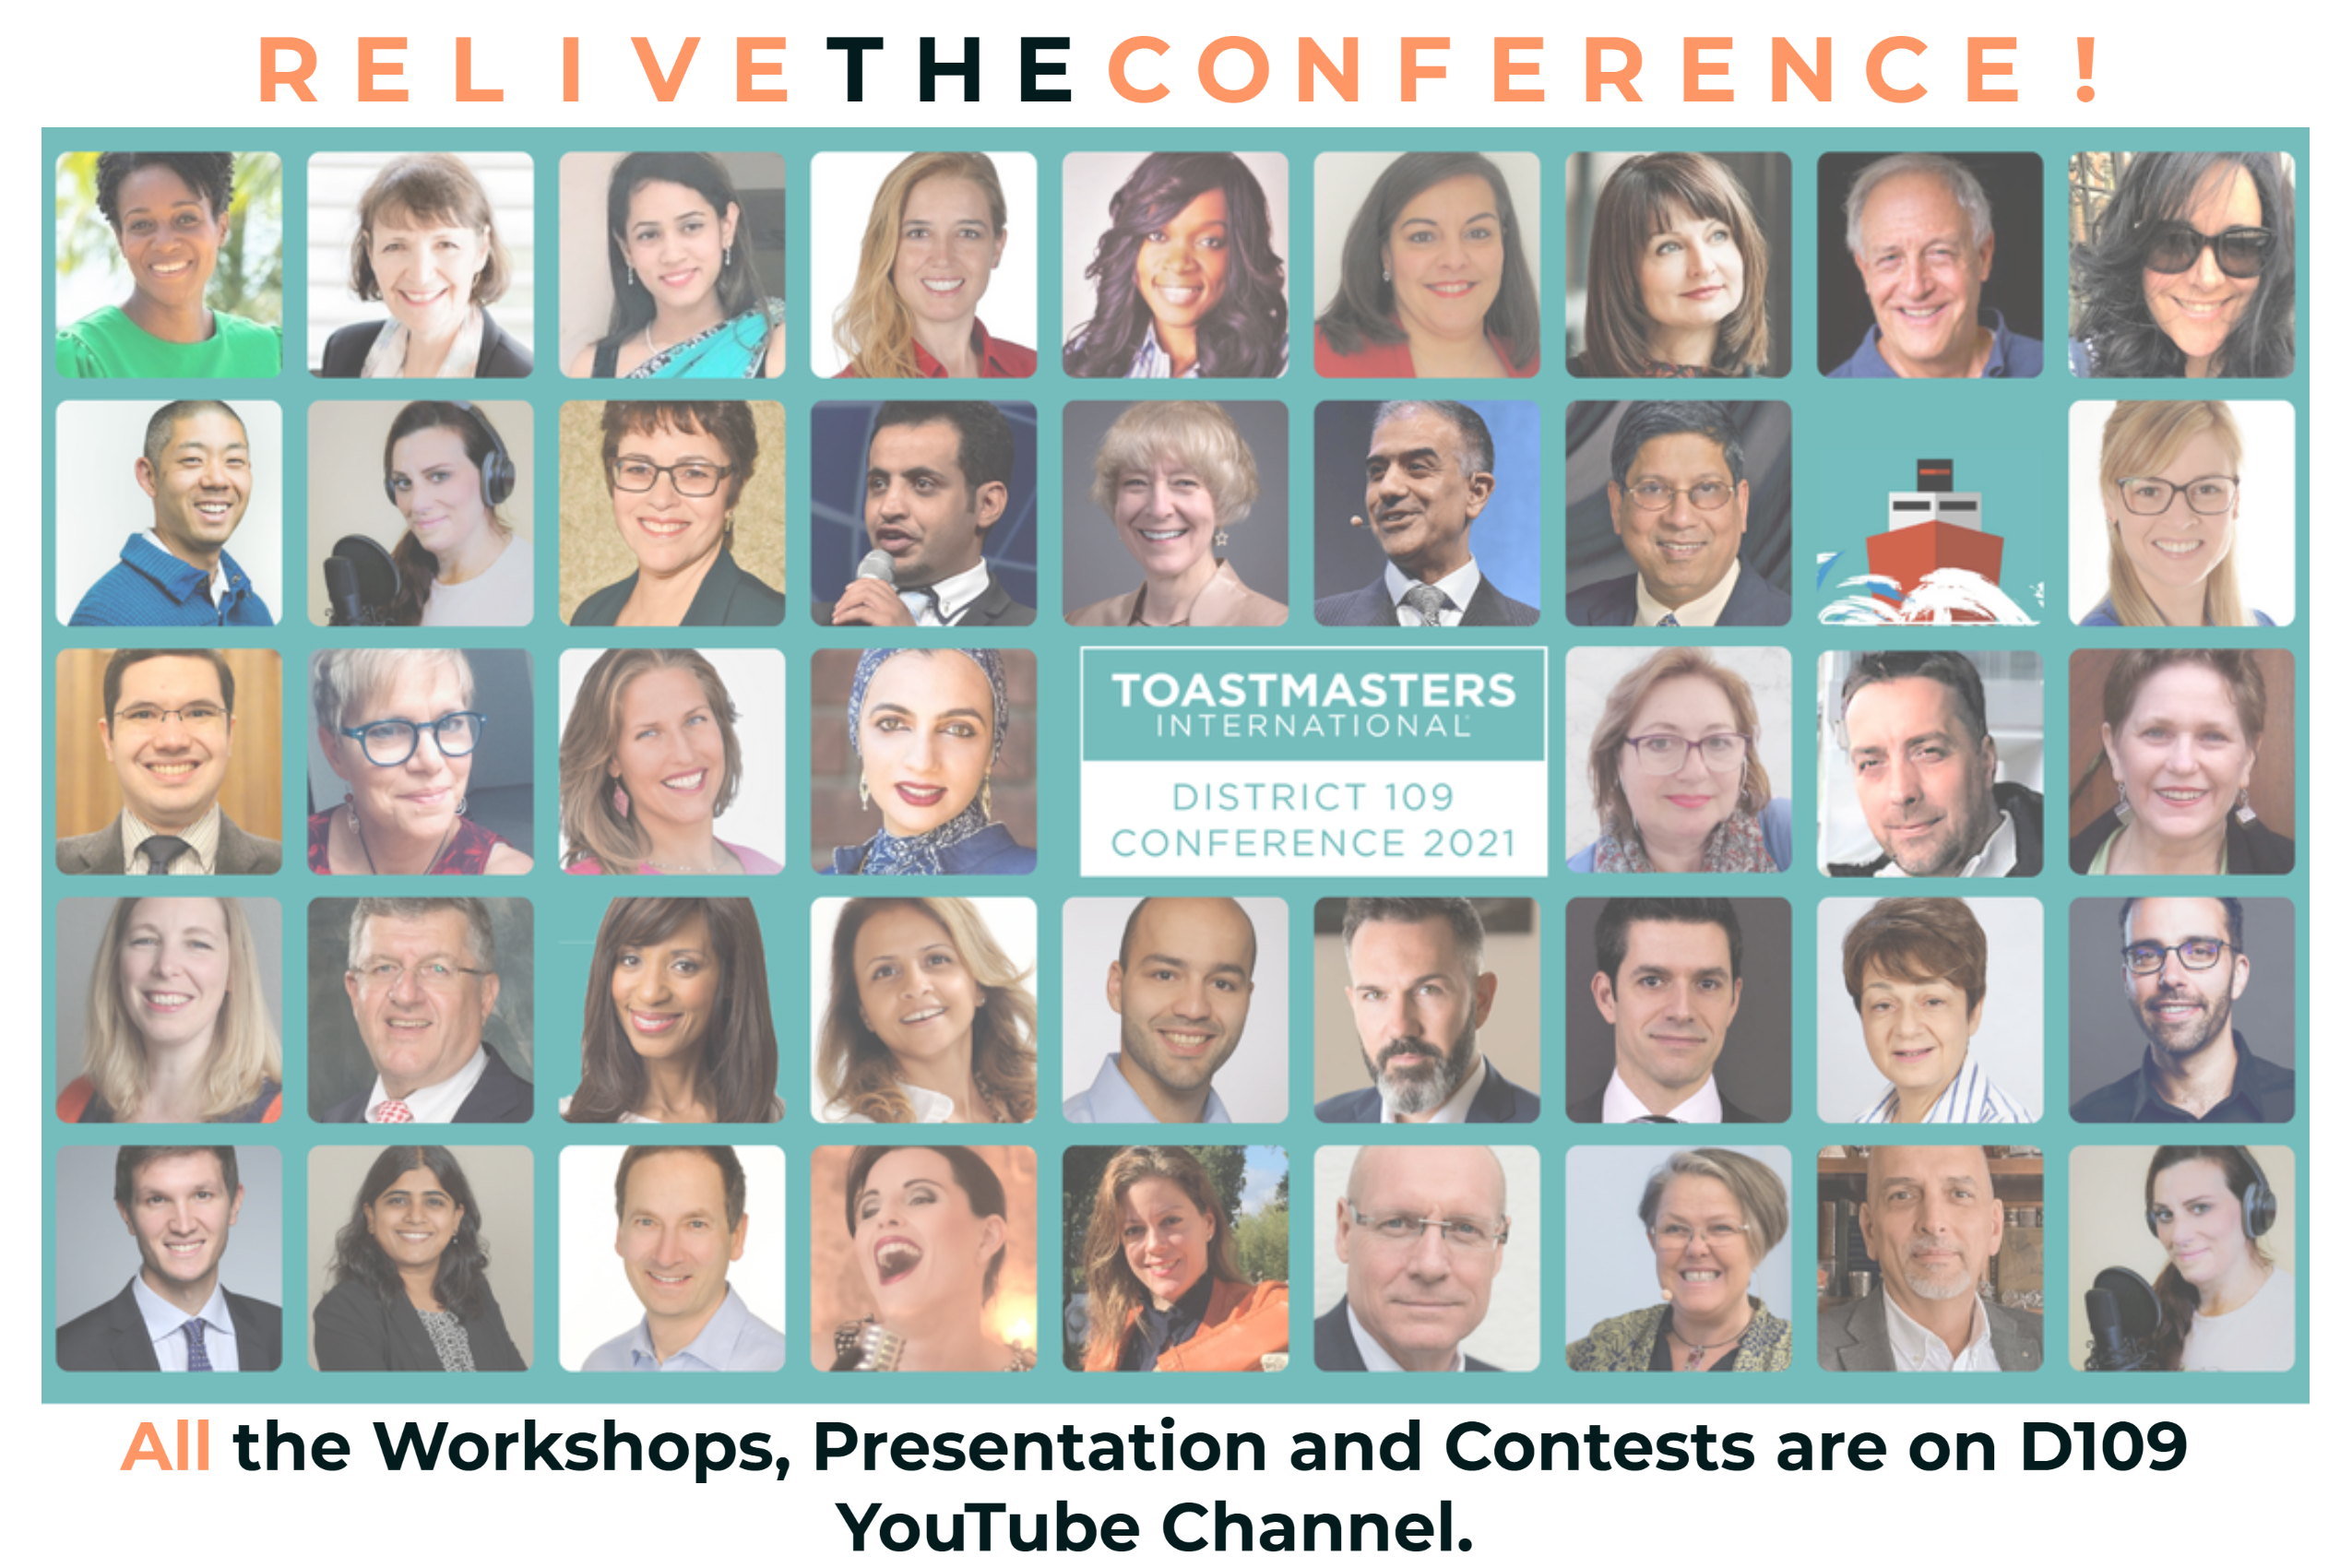 Relive the Conference